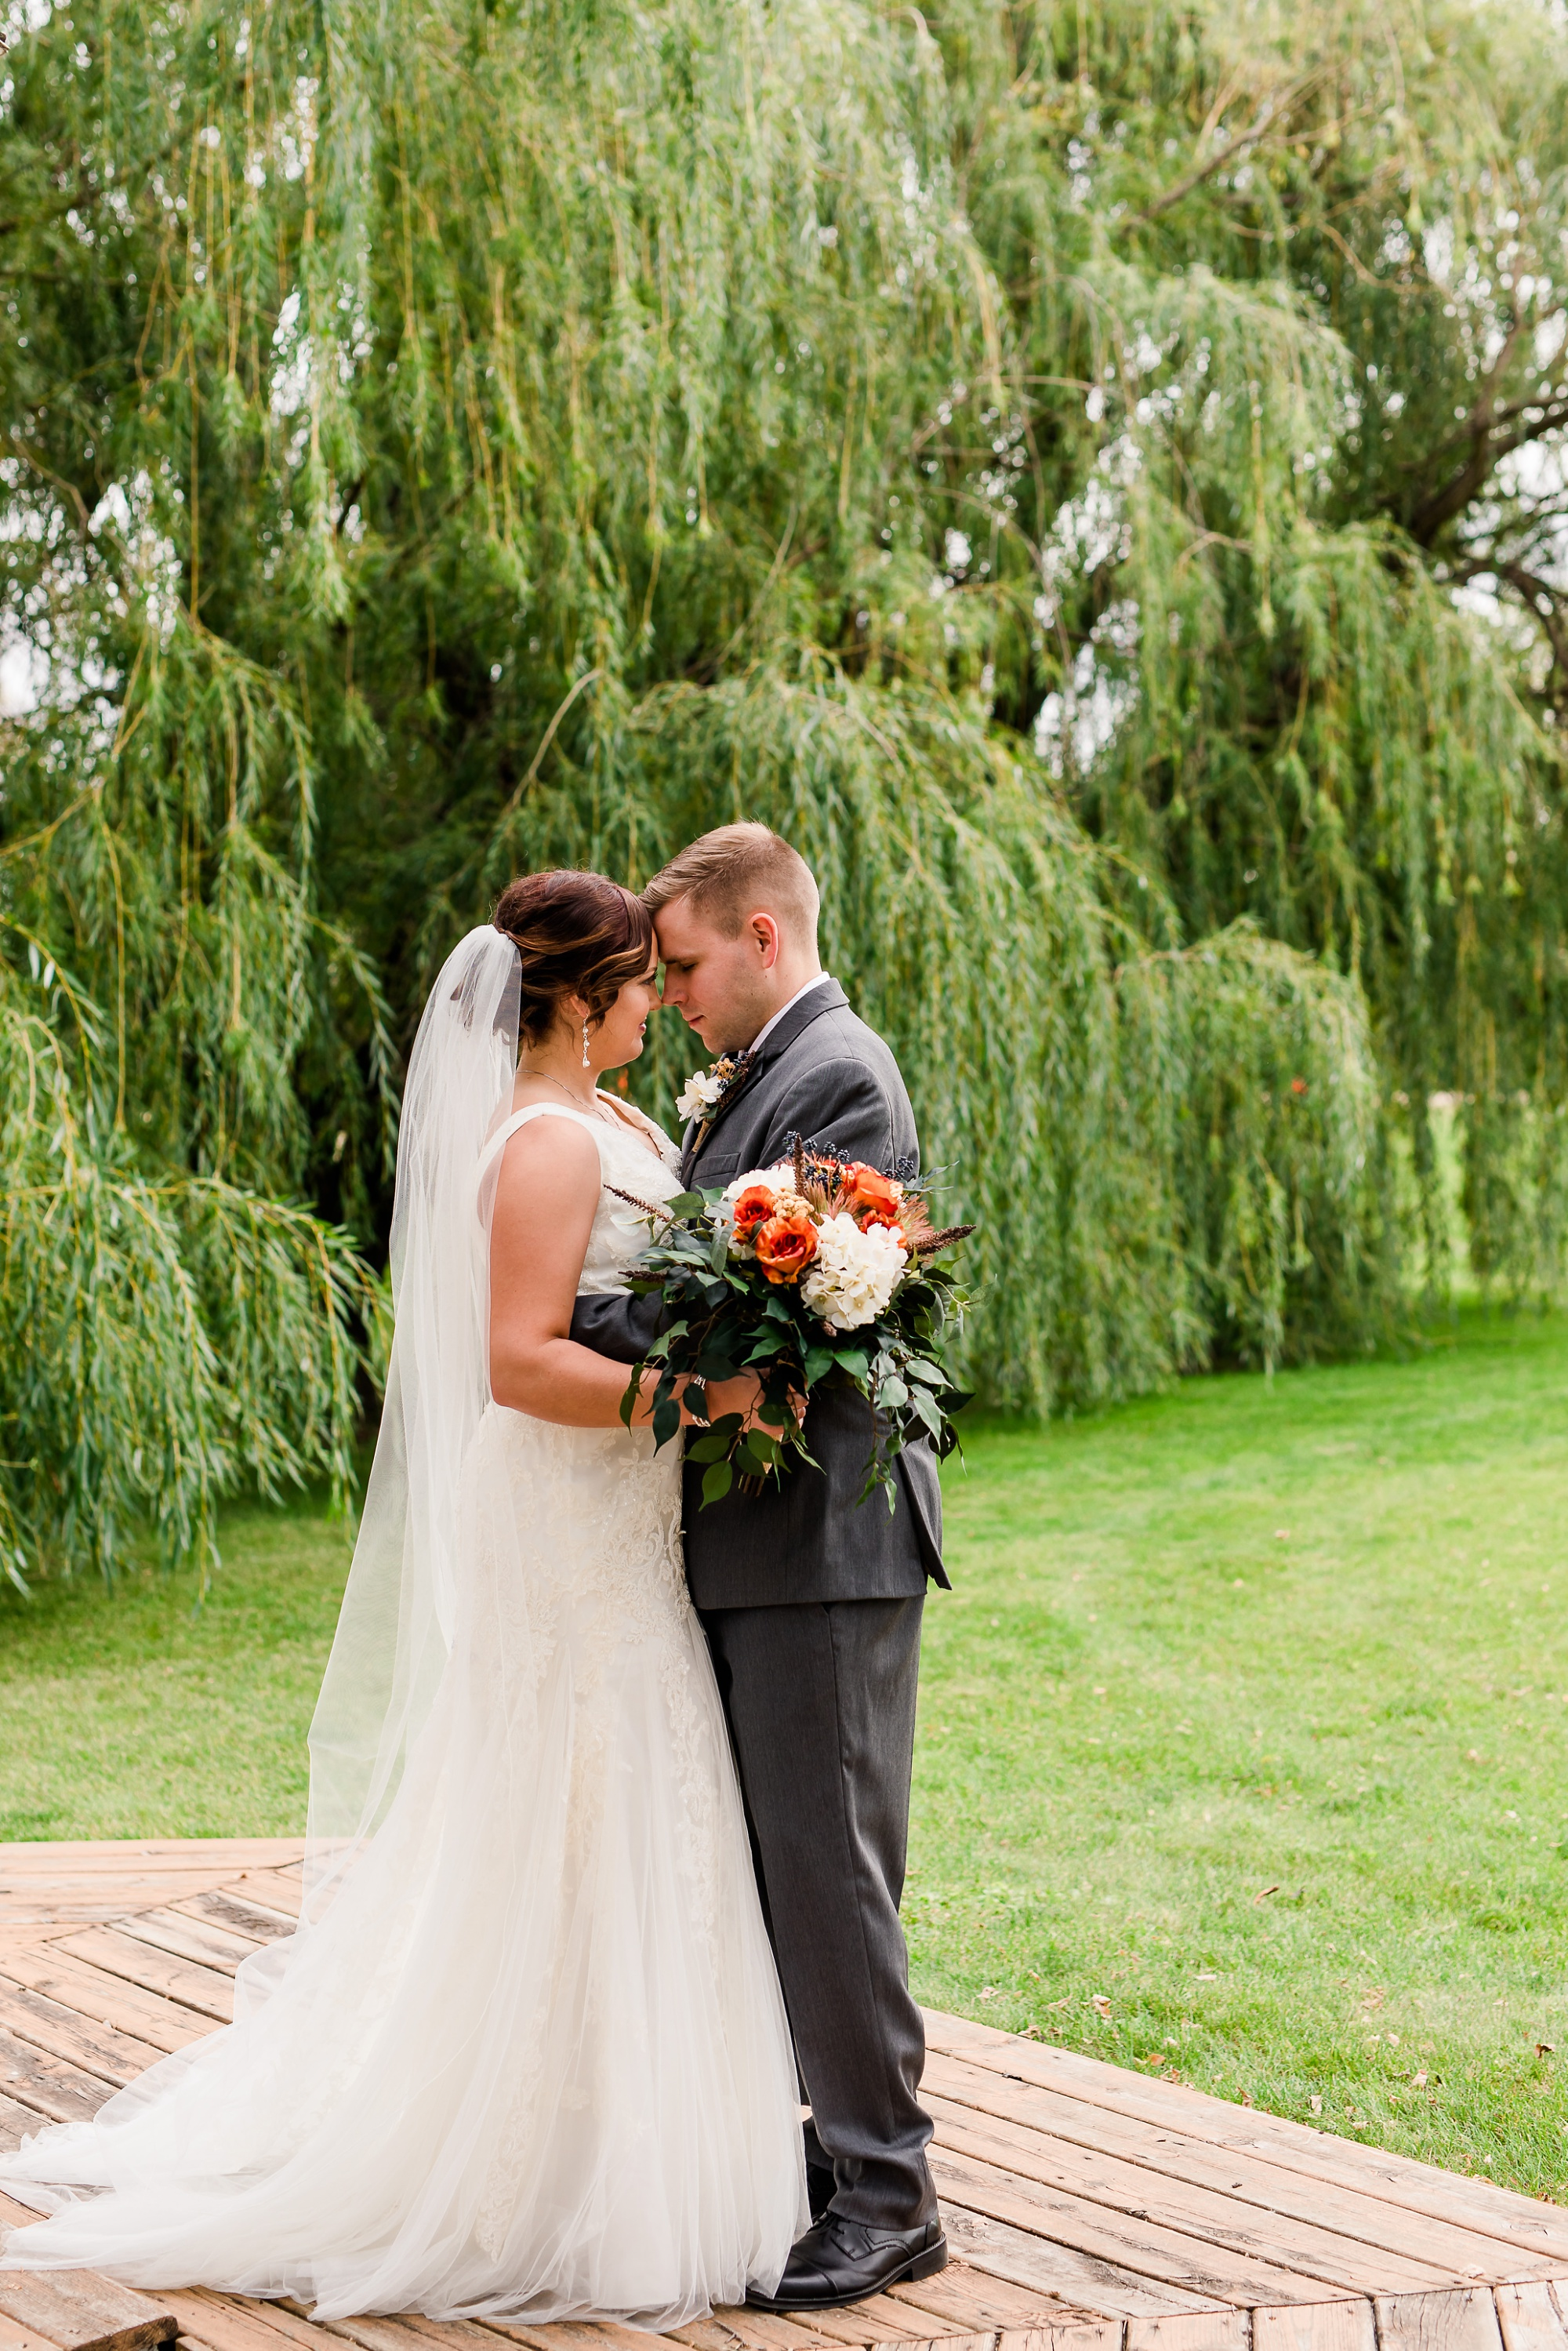 Amber Langerud Photography_Moohread, Outdoor, Barn Wedding at A Friends House_7055.jpg